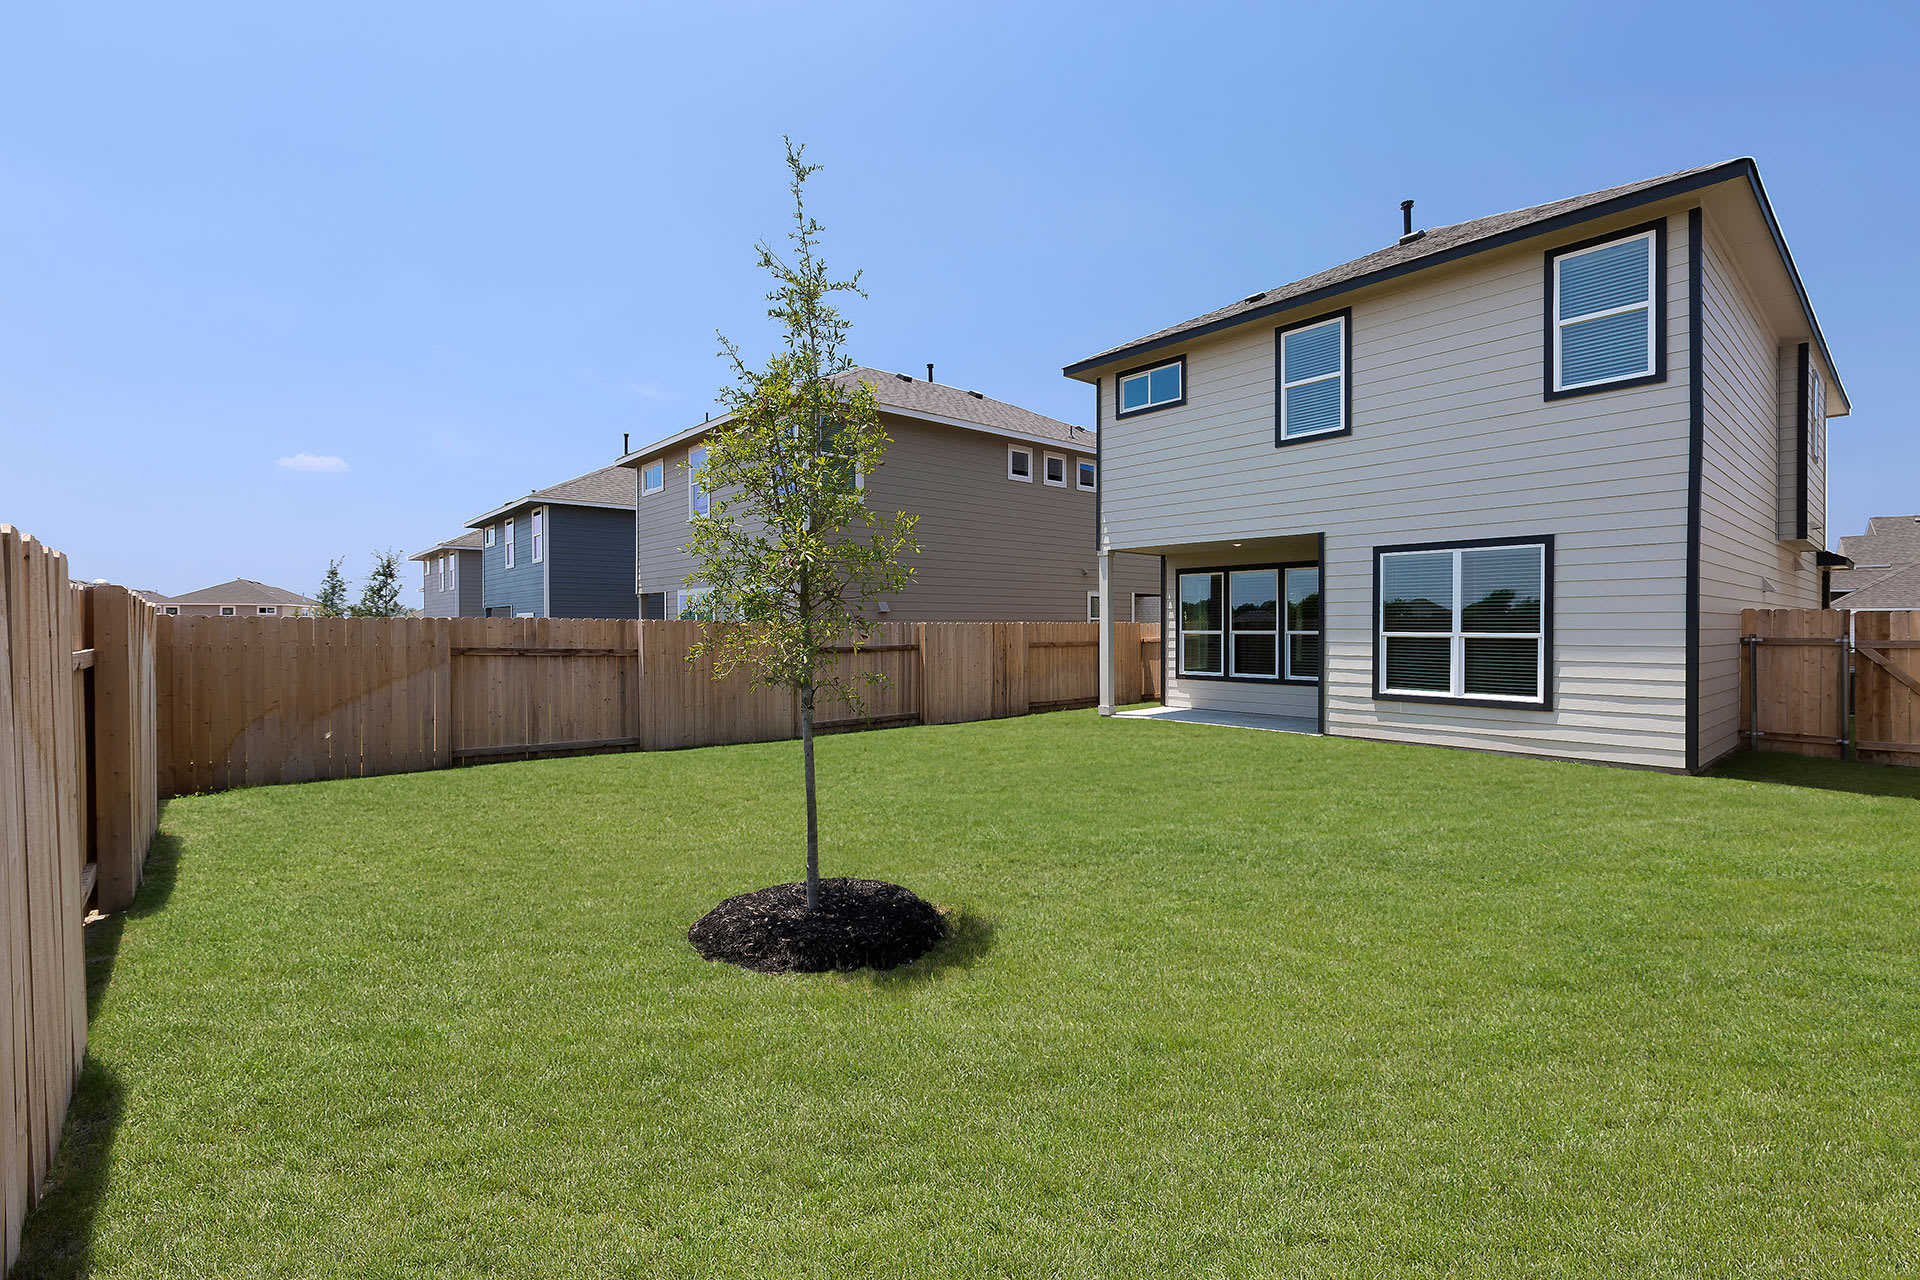 Rivers Edge Apartments Private, Fenced Backyards with Grass